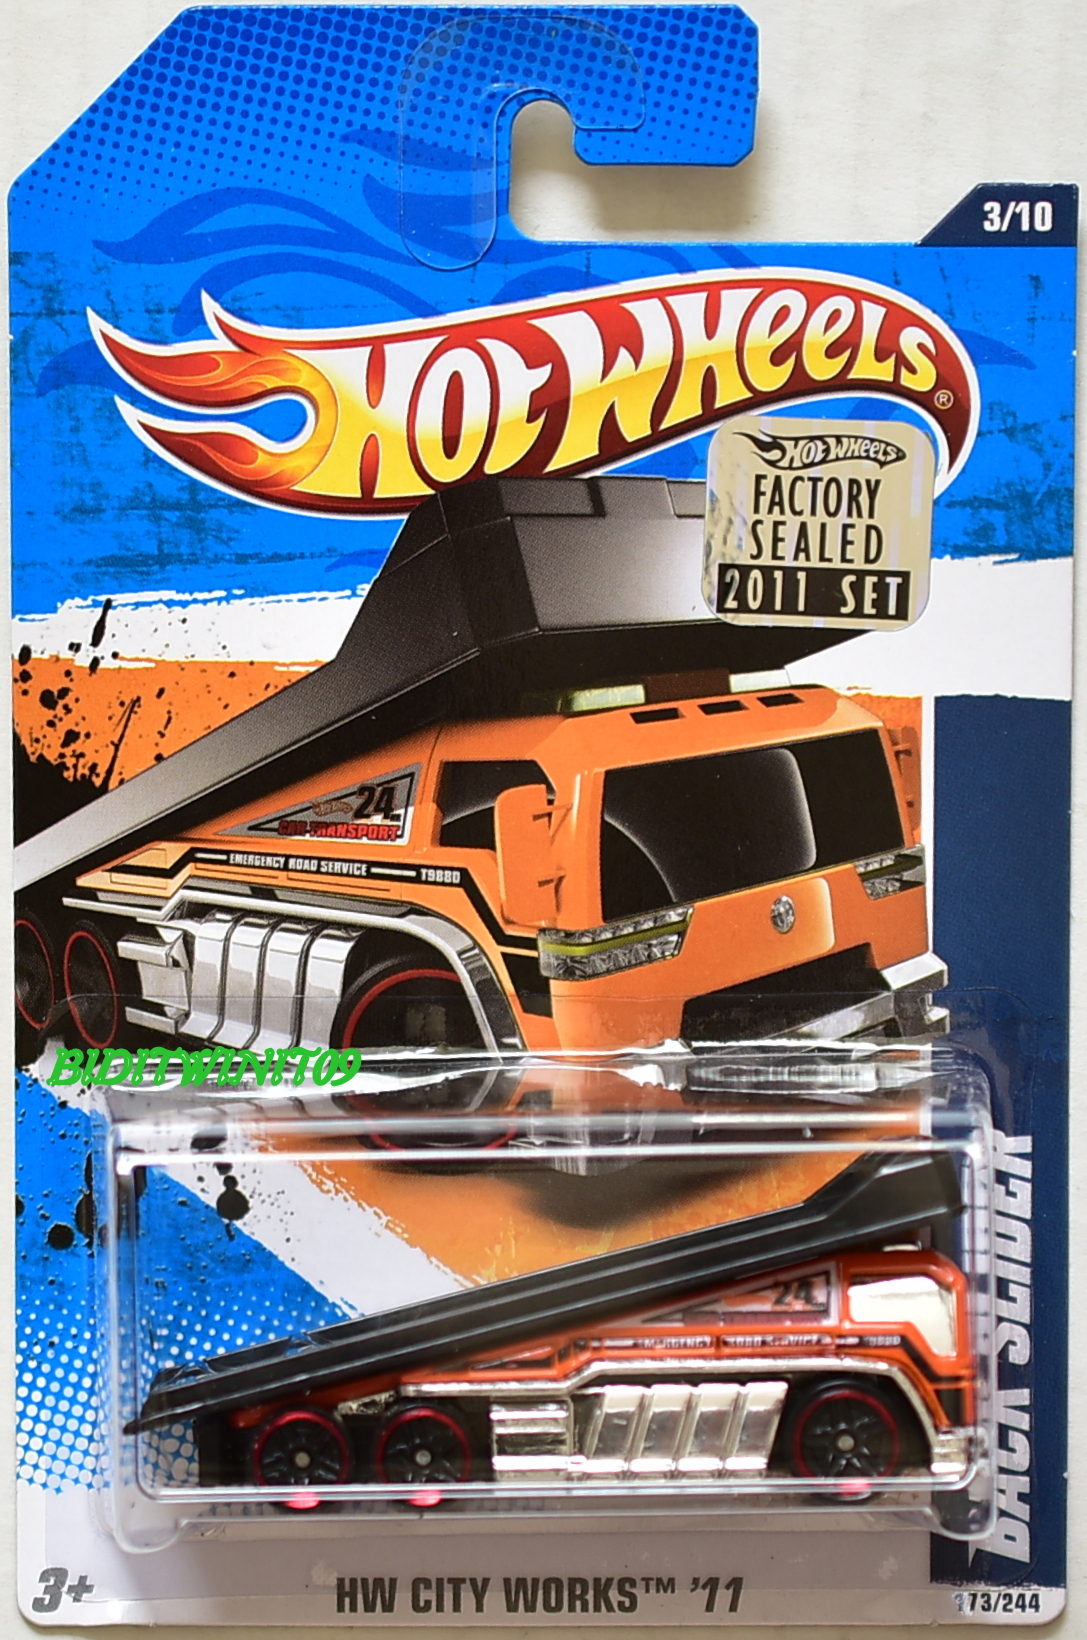 HOT WHEELS 2011 HW CITY WORKS BACK SLIDER #3/10 ORANGE FACTORY SEALED